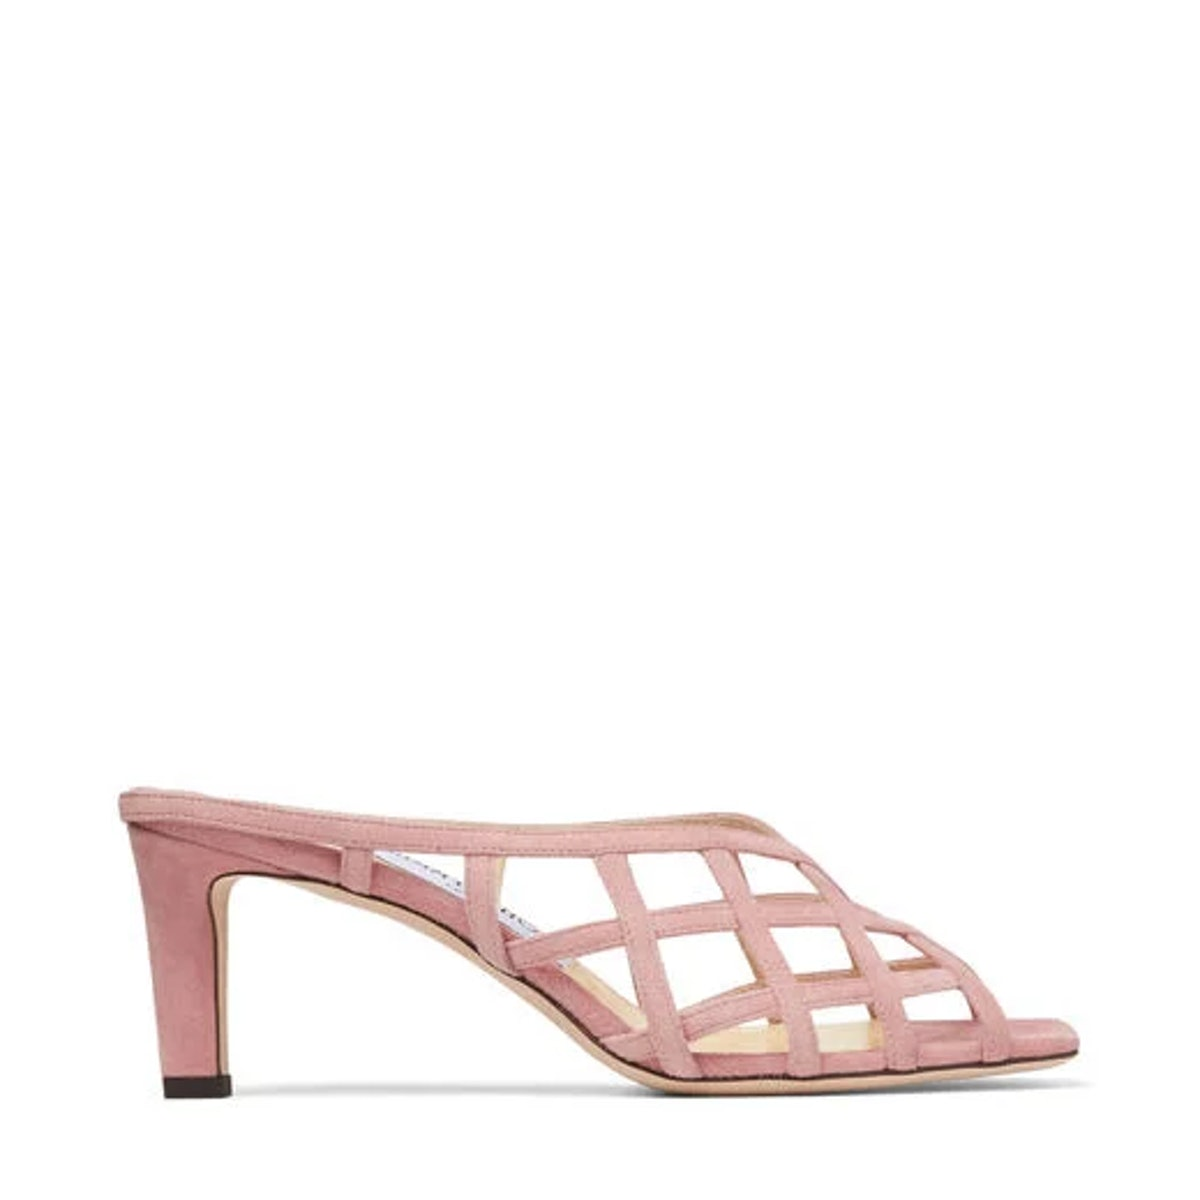 Blush Suede Caged Mules